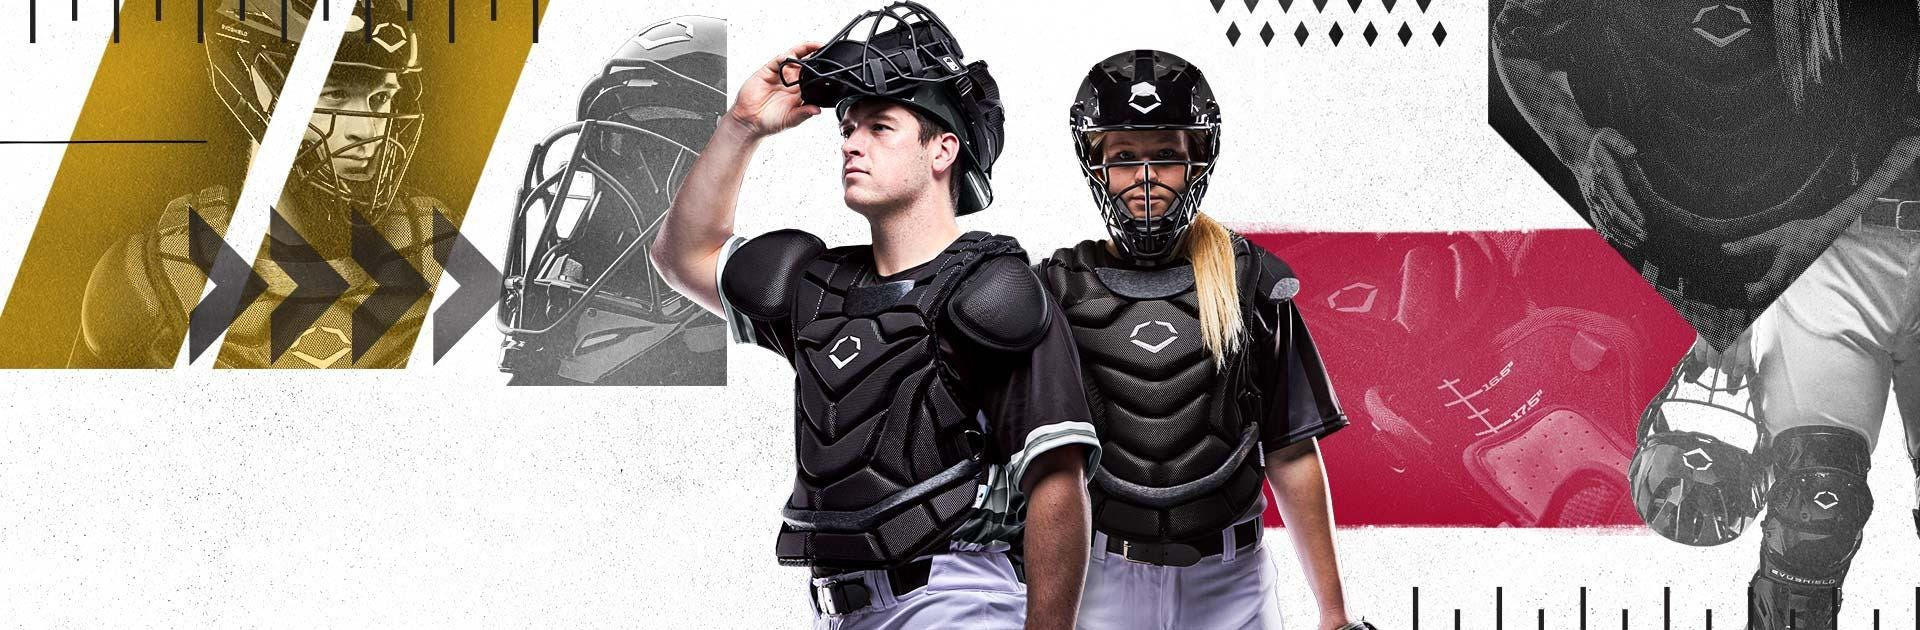 Evoshield Custom Fit Catcher's Gear System for Baseball and Fastpitch